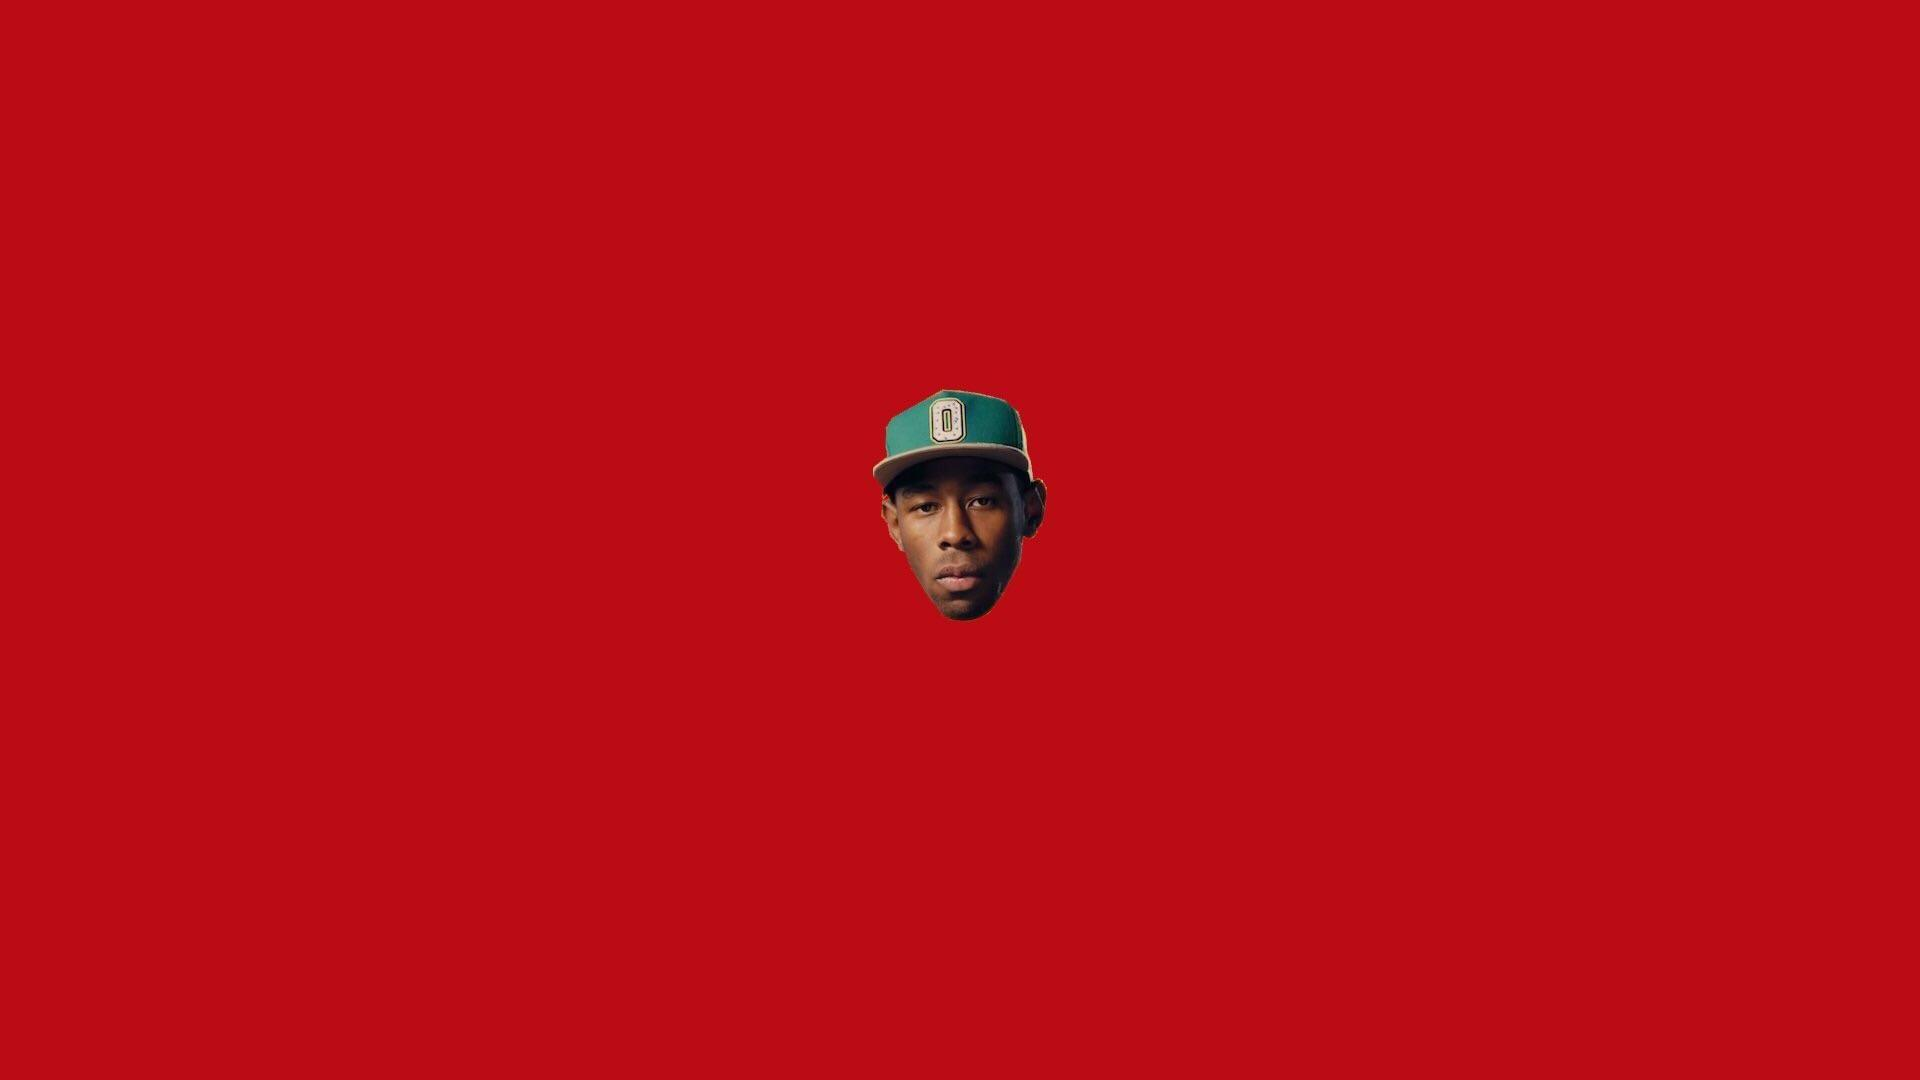 Tyler The Creator Aesthetic PC Wallpapers - Wallpaper Cave